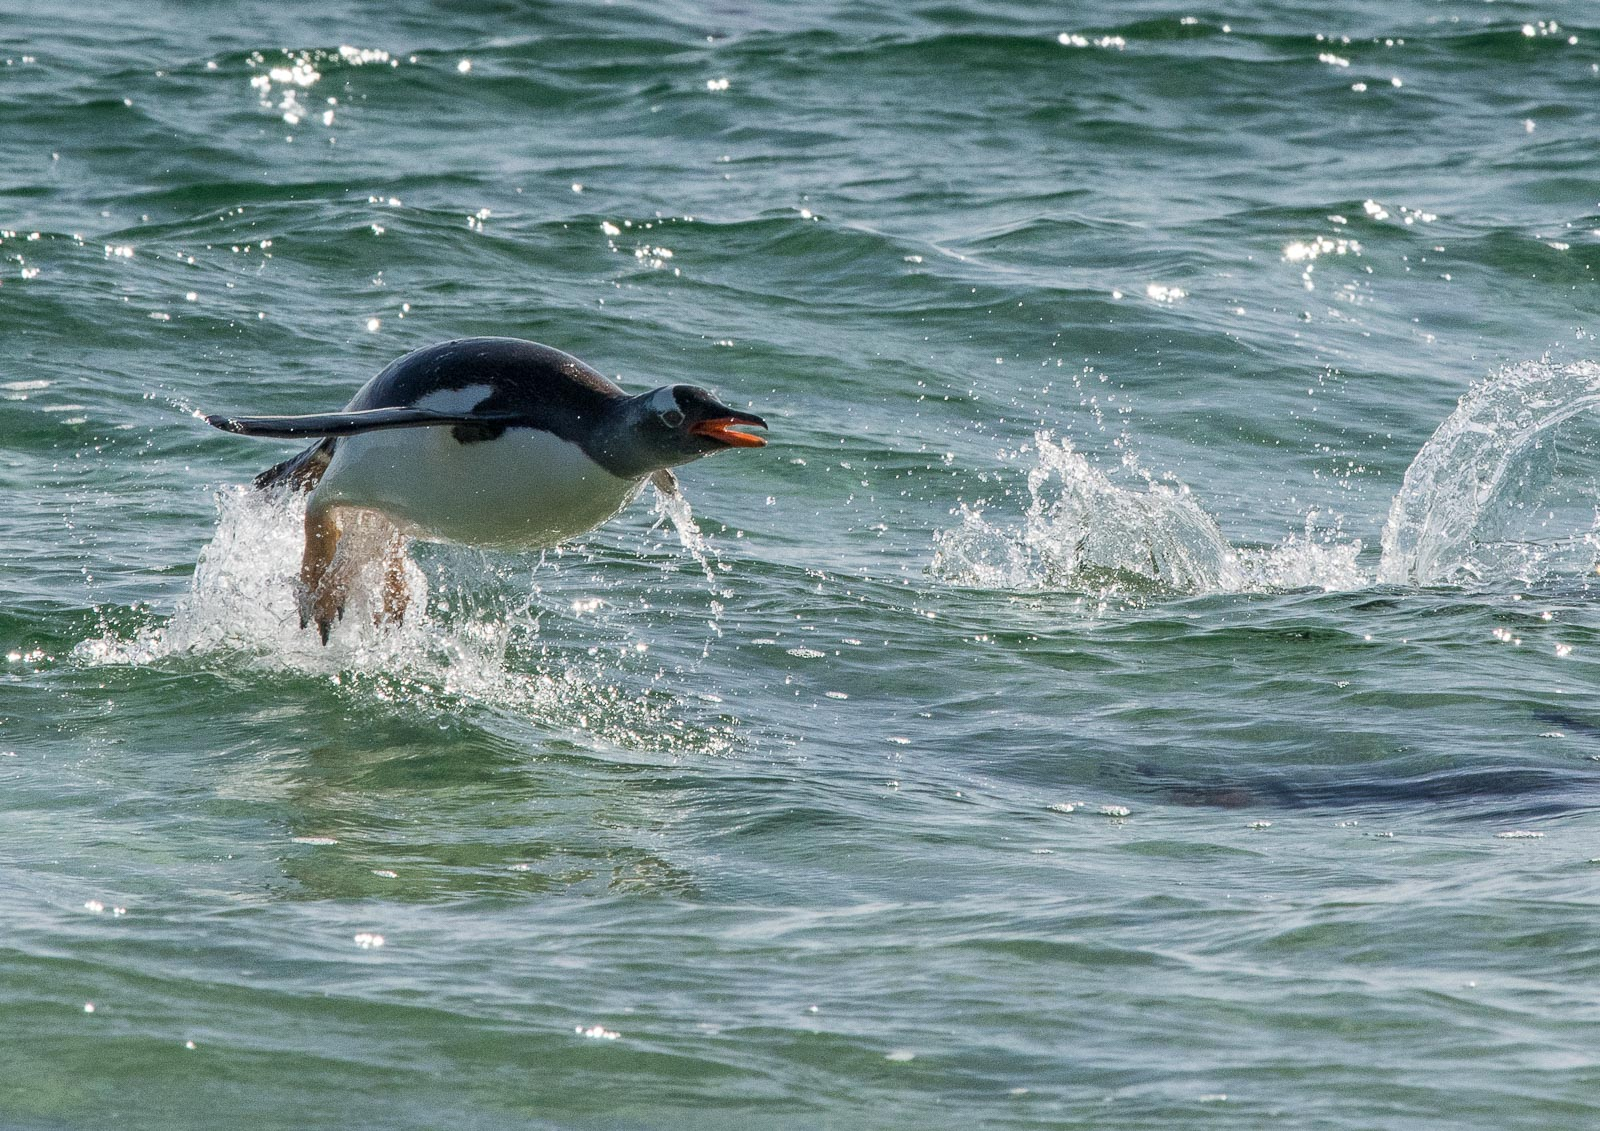 The closest I got to a flying penguin.  Nikon D500 300mm f4; 1/2500sec f14 ISO 800